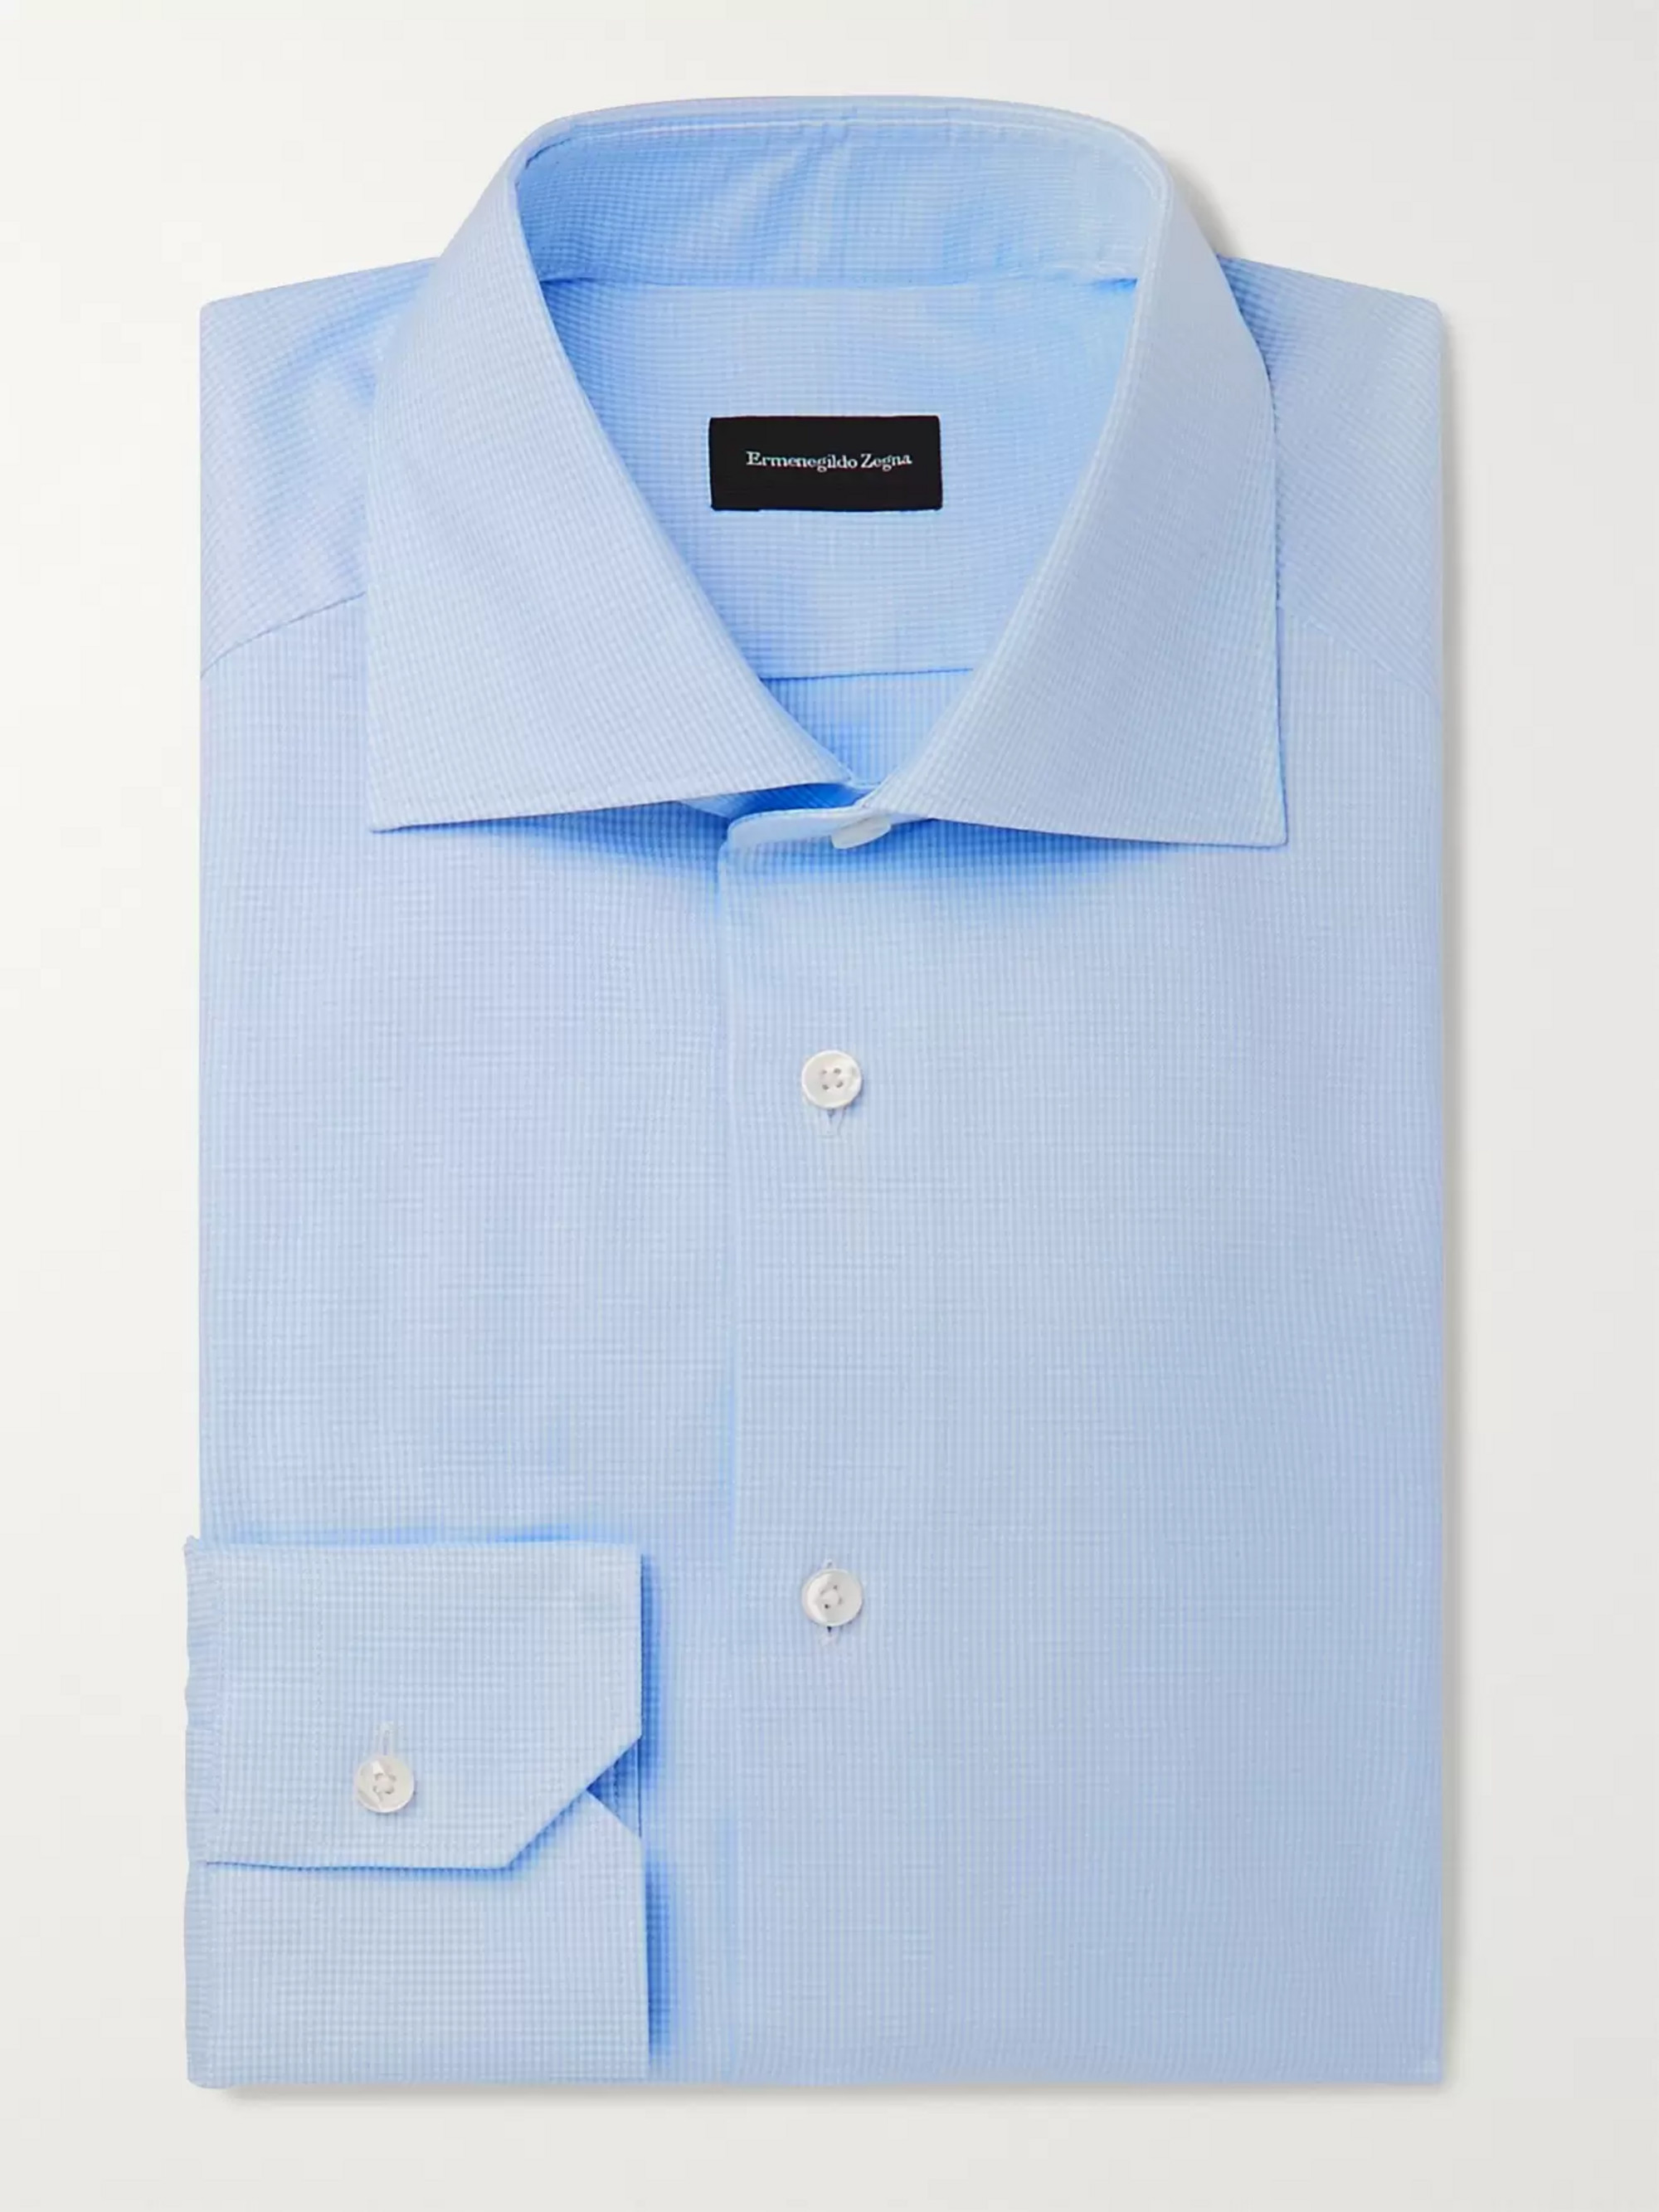 Ermenegildo Zegna Light-Blue Cutaway-Collar Puppytooth Cotton Shirt